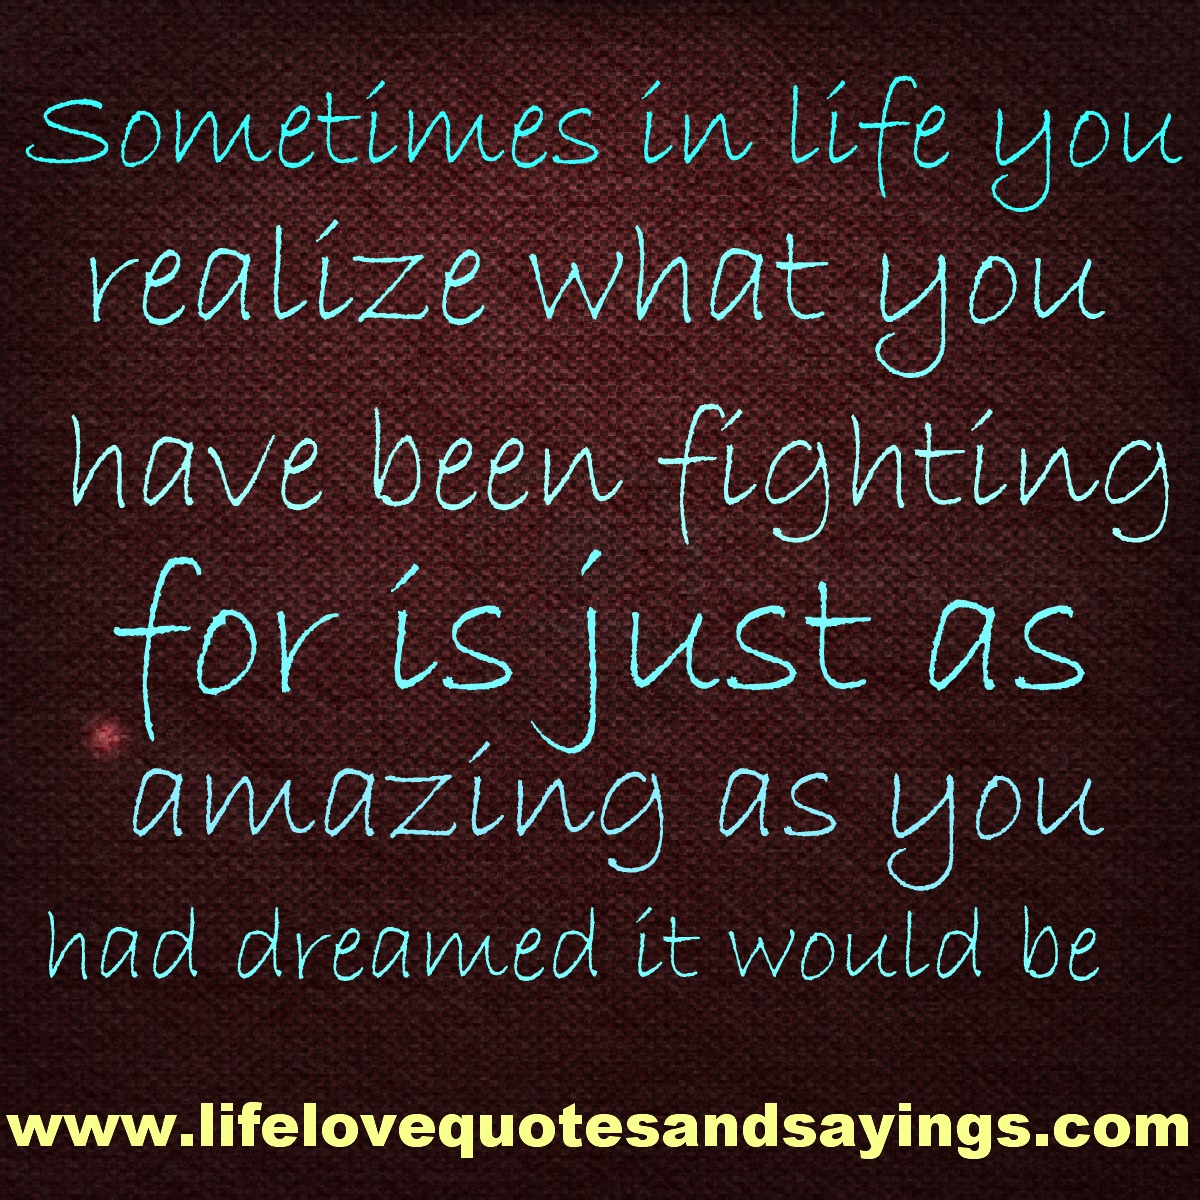 Love And Fighting Quotes: Fighting For Love Quotes And Sayings. QuotesGram